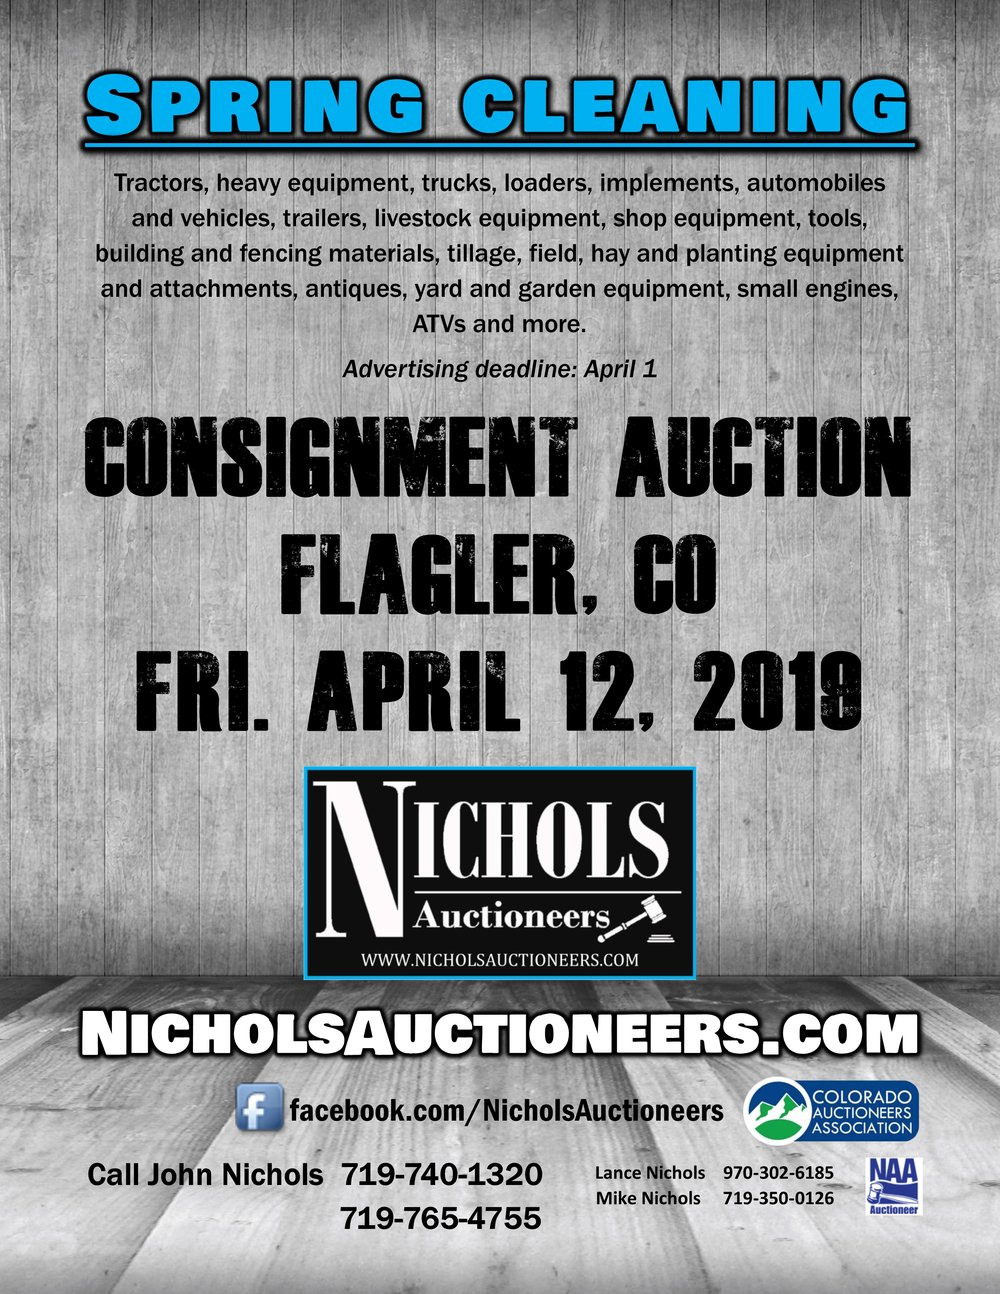 Call for Consignments Flyer Spring 2019 Flagler.jpg